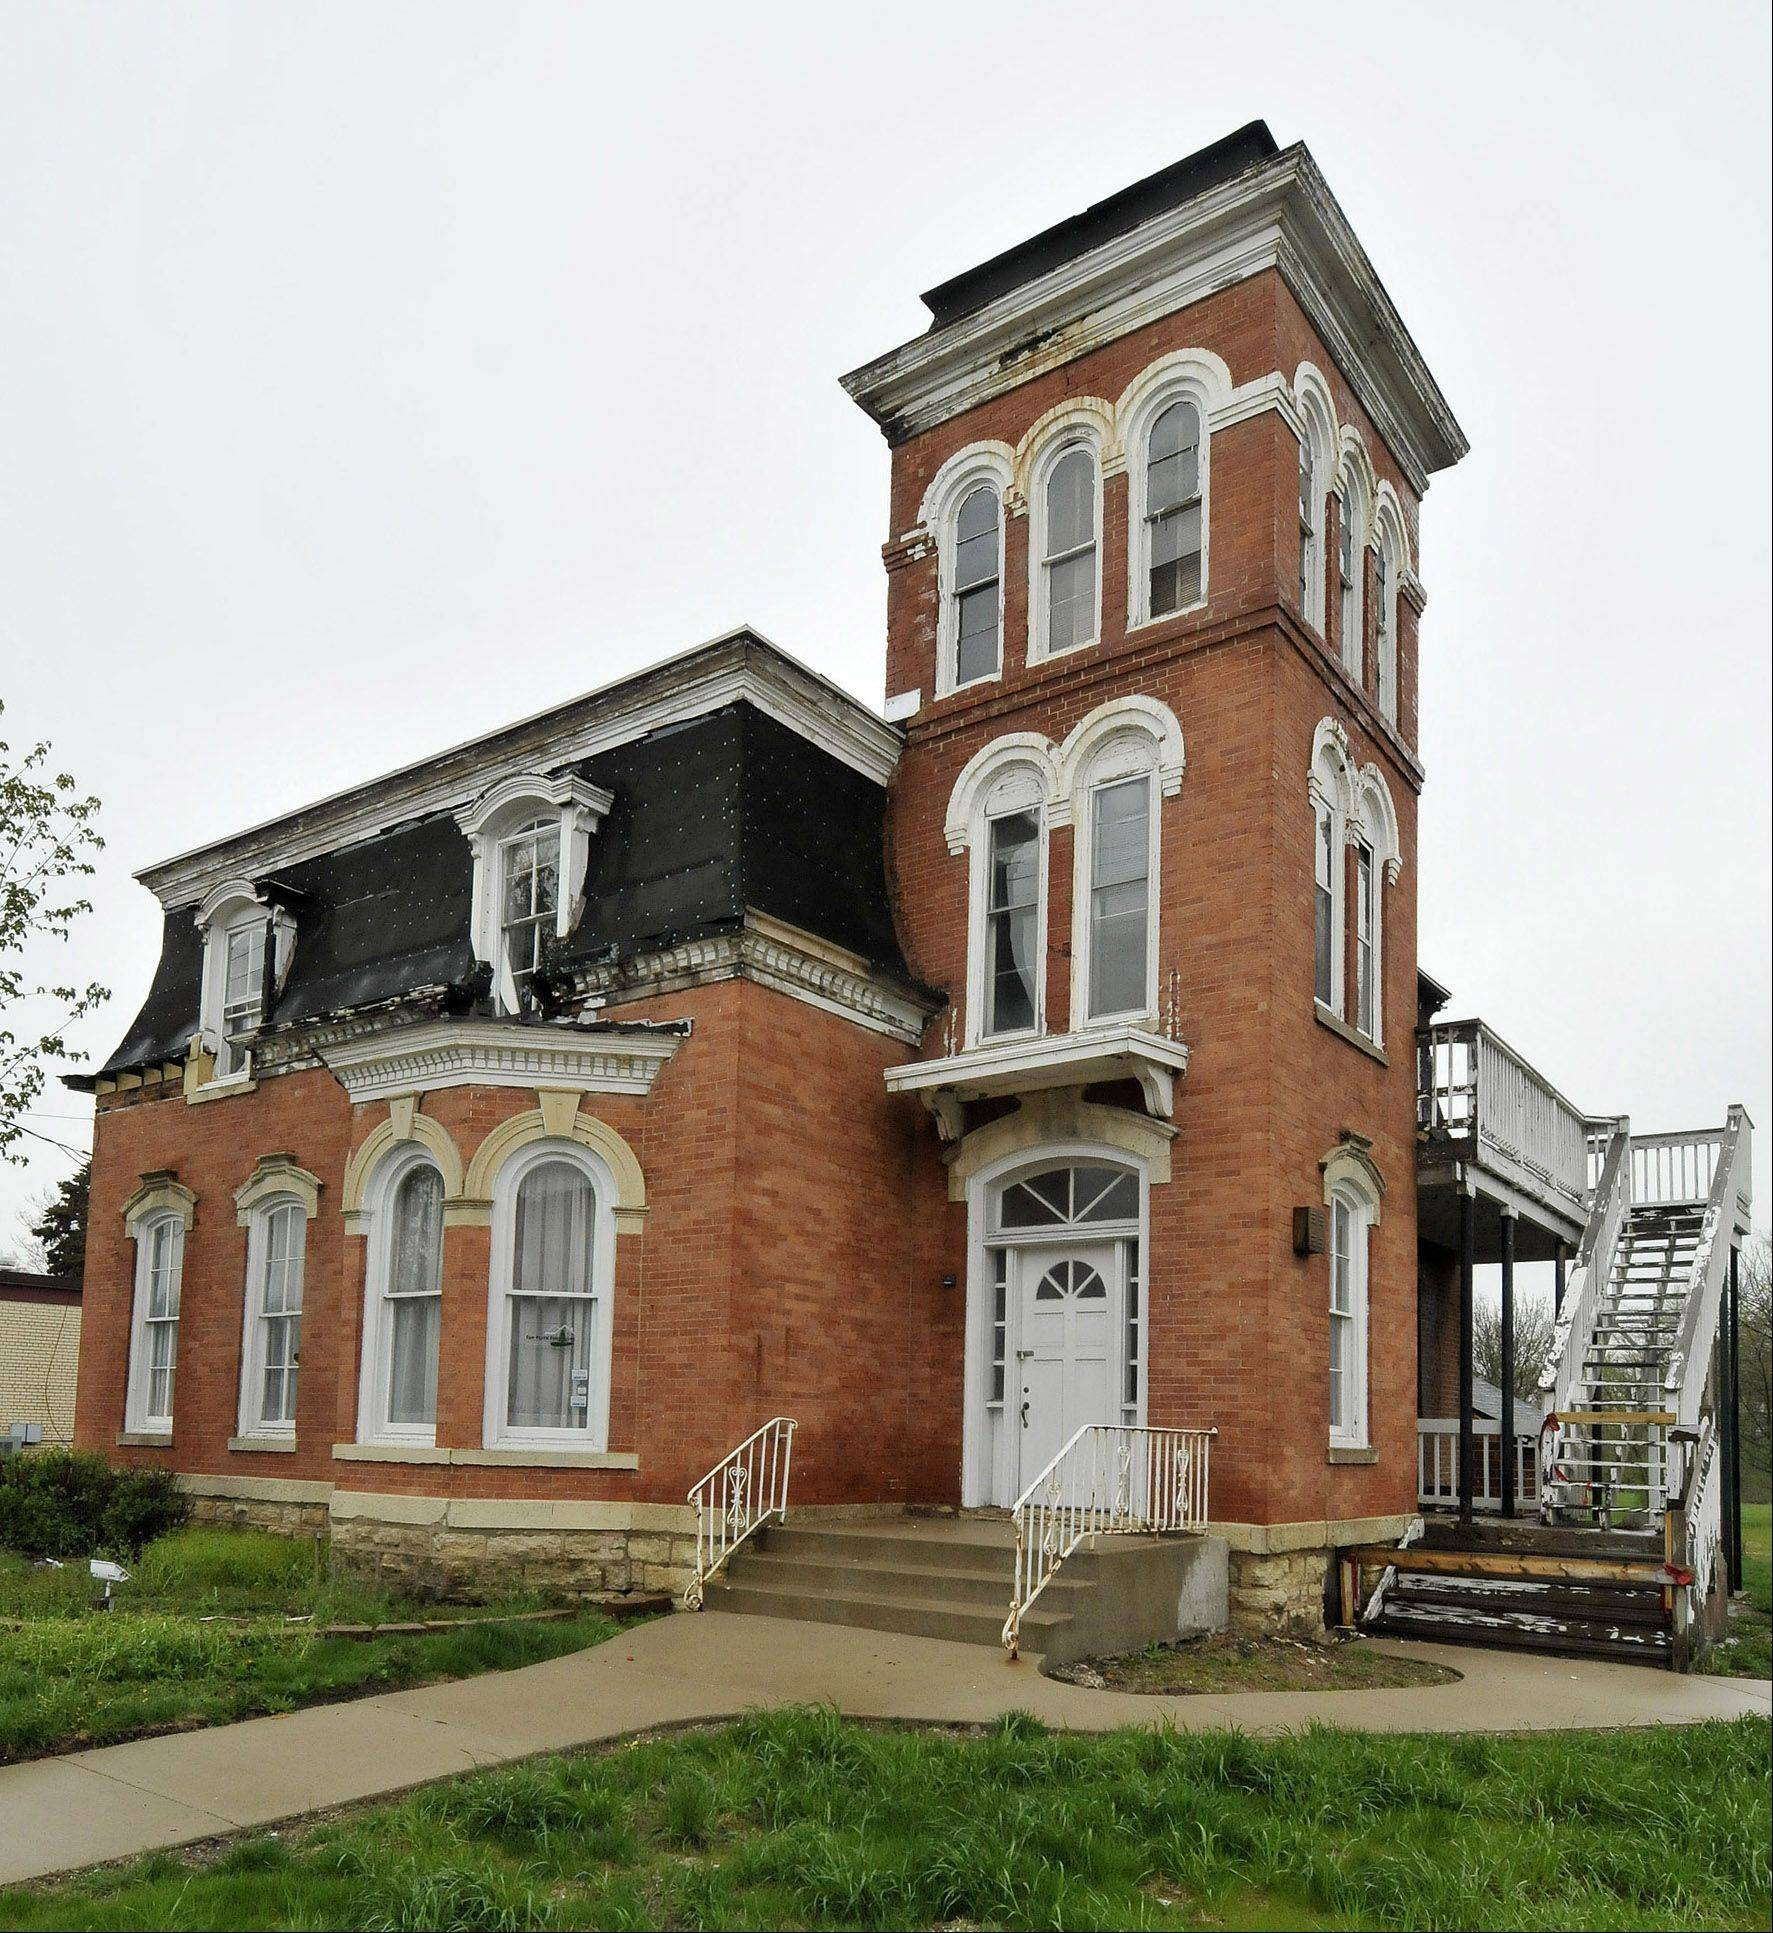 A nonprofit group is planning to restore the Joel Wiant House in West Chicago. But first, the city will have to agree to sell the historic building, which is located at 151 W. Washington St.